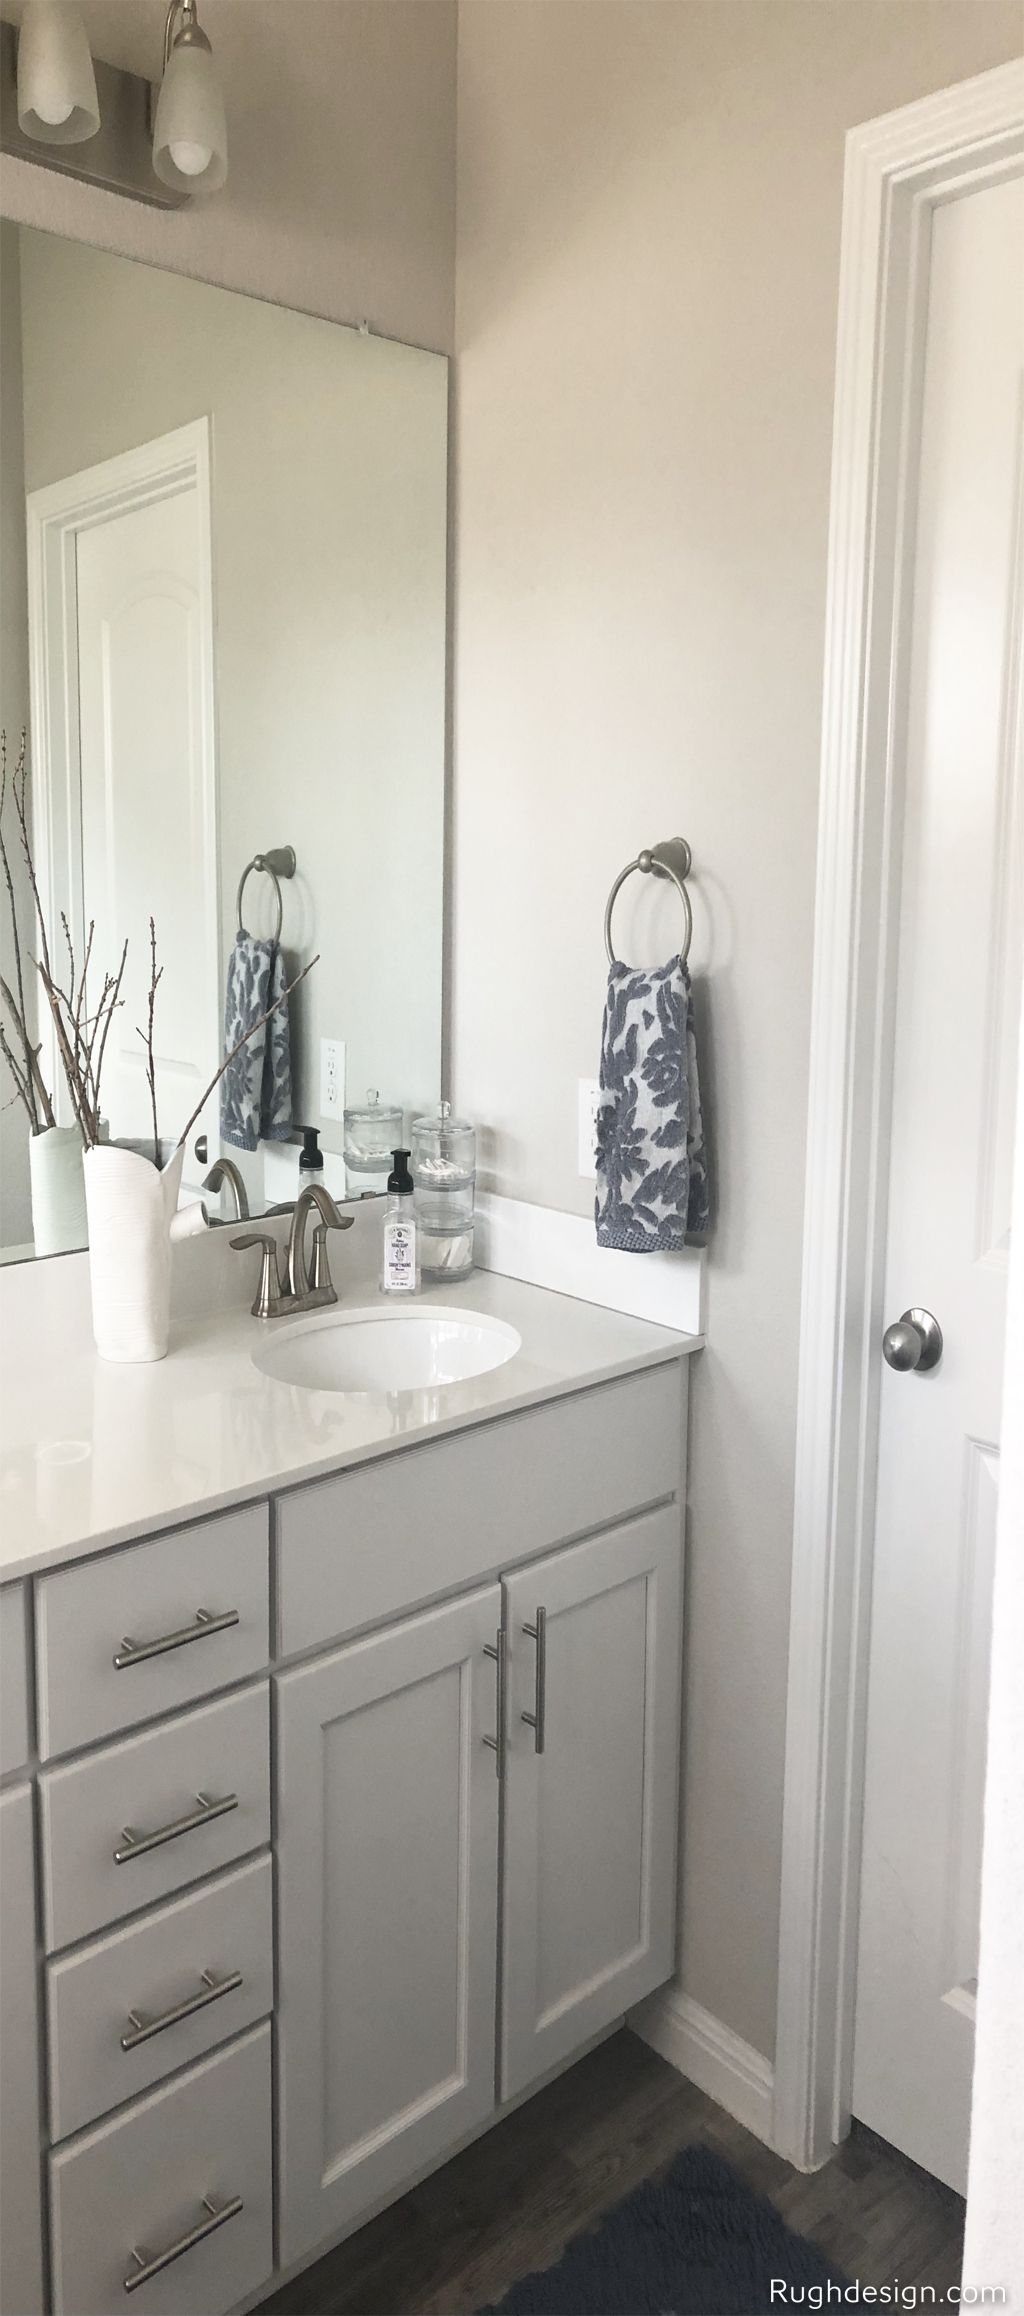 Agreeable Gray in my bathroom